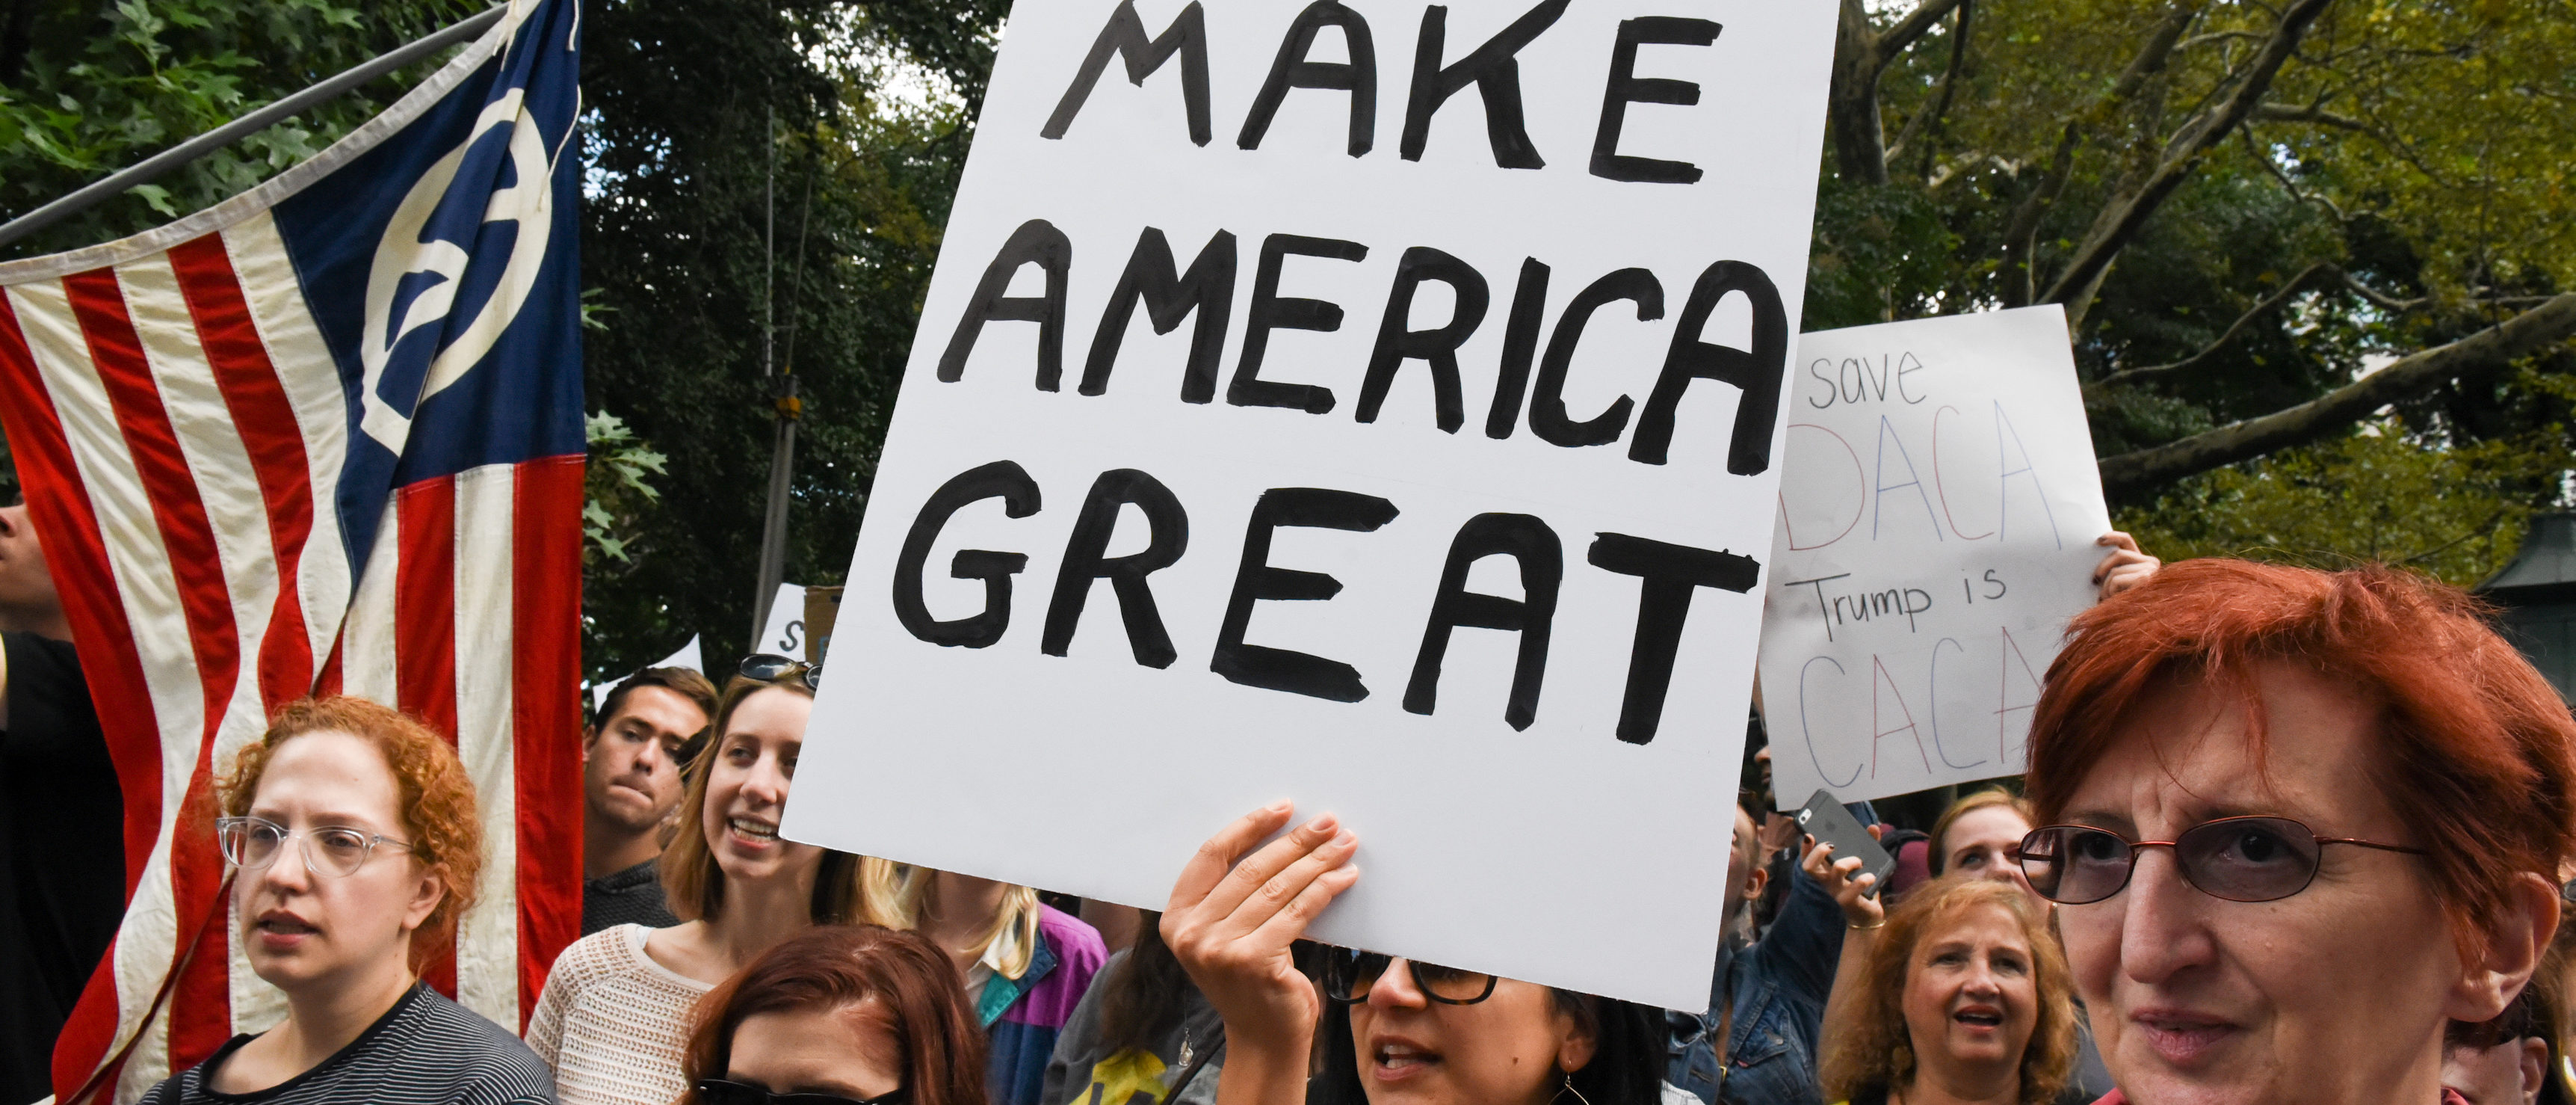 People participate in a protest in defense of the Deferred Action for Childhood Arrivals program or DACA in New York, U.S., September 9, 2017. REUTERS/Stephanie Keith